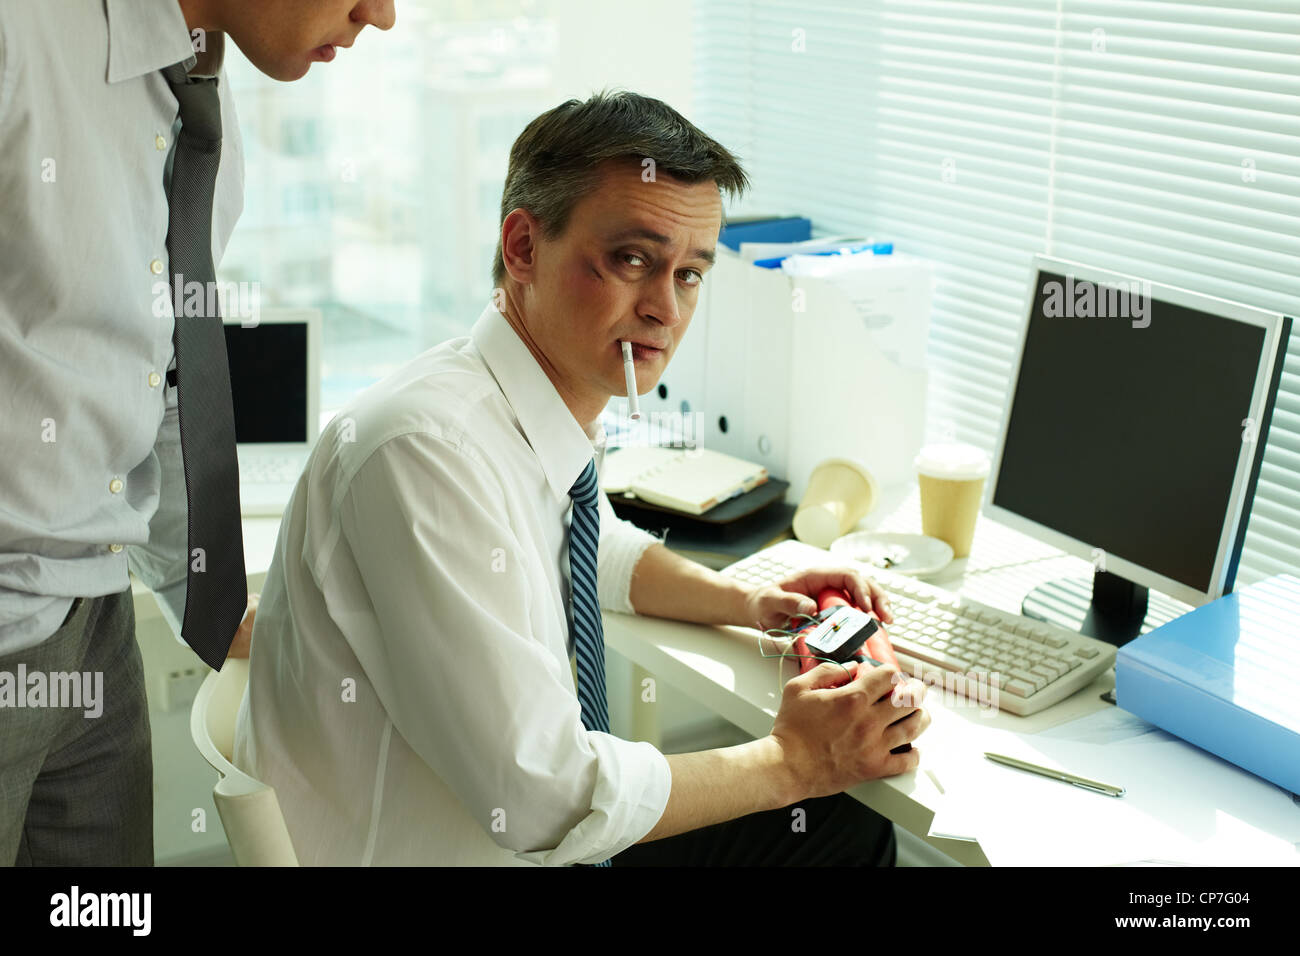 Portrait of businessman with bruised face and cigarette holding dynamite and looking at camera - Stock Image